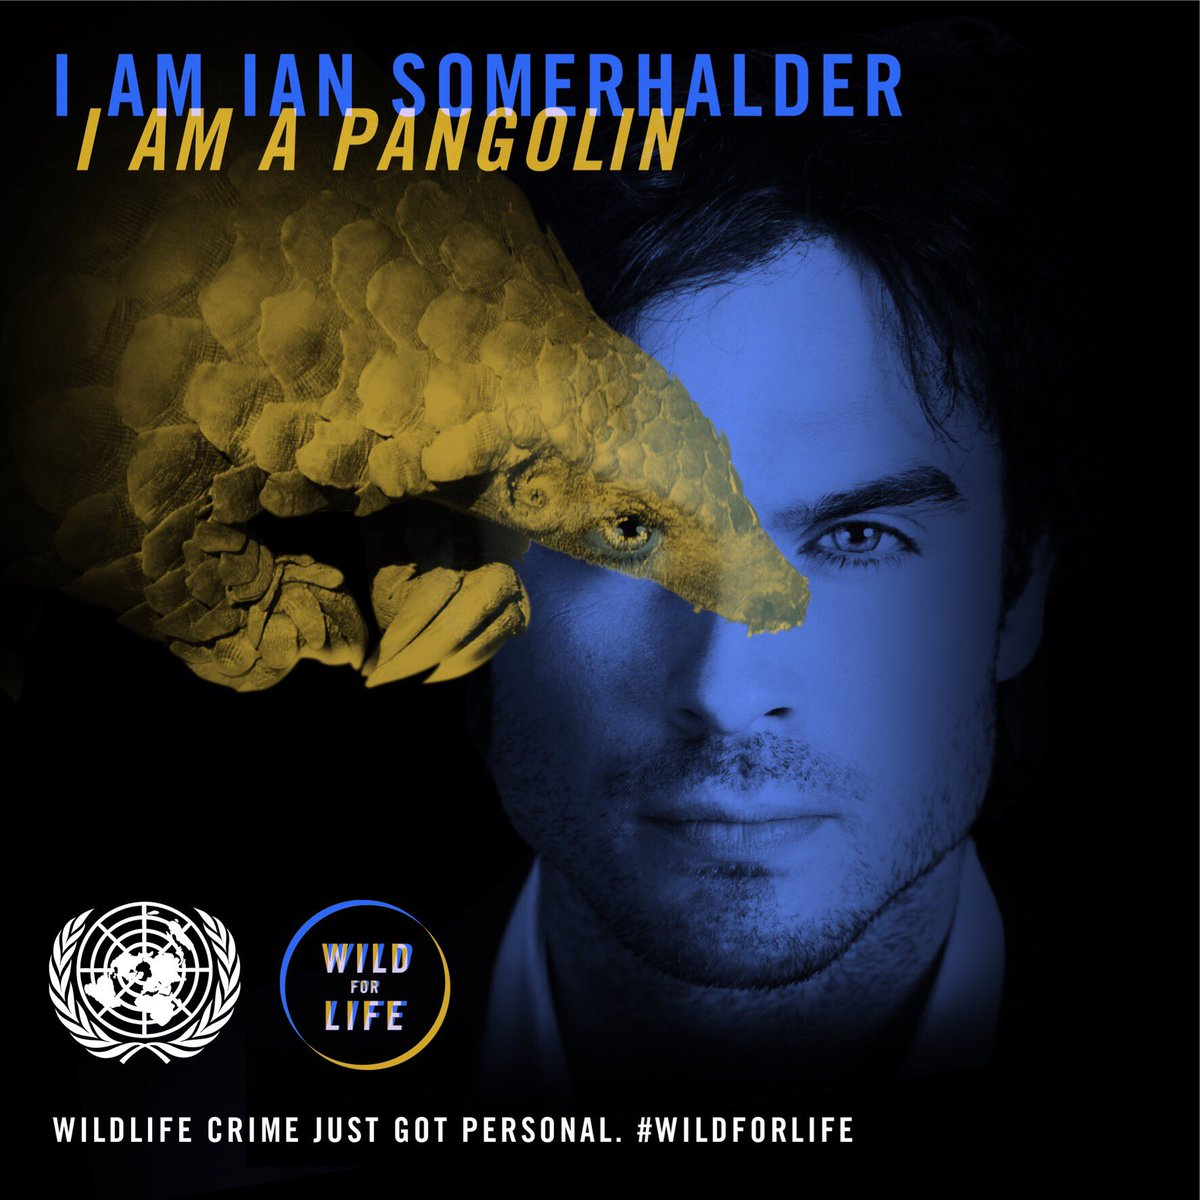 I am Ian. I am a Pangolin. What are you? Find your kindred species https://t.co/uCxCKgwCJC #Wildforlife